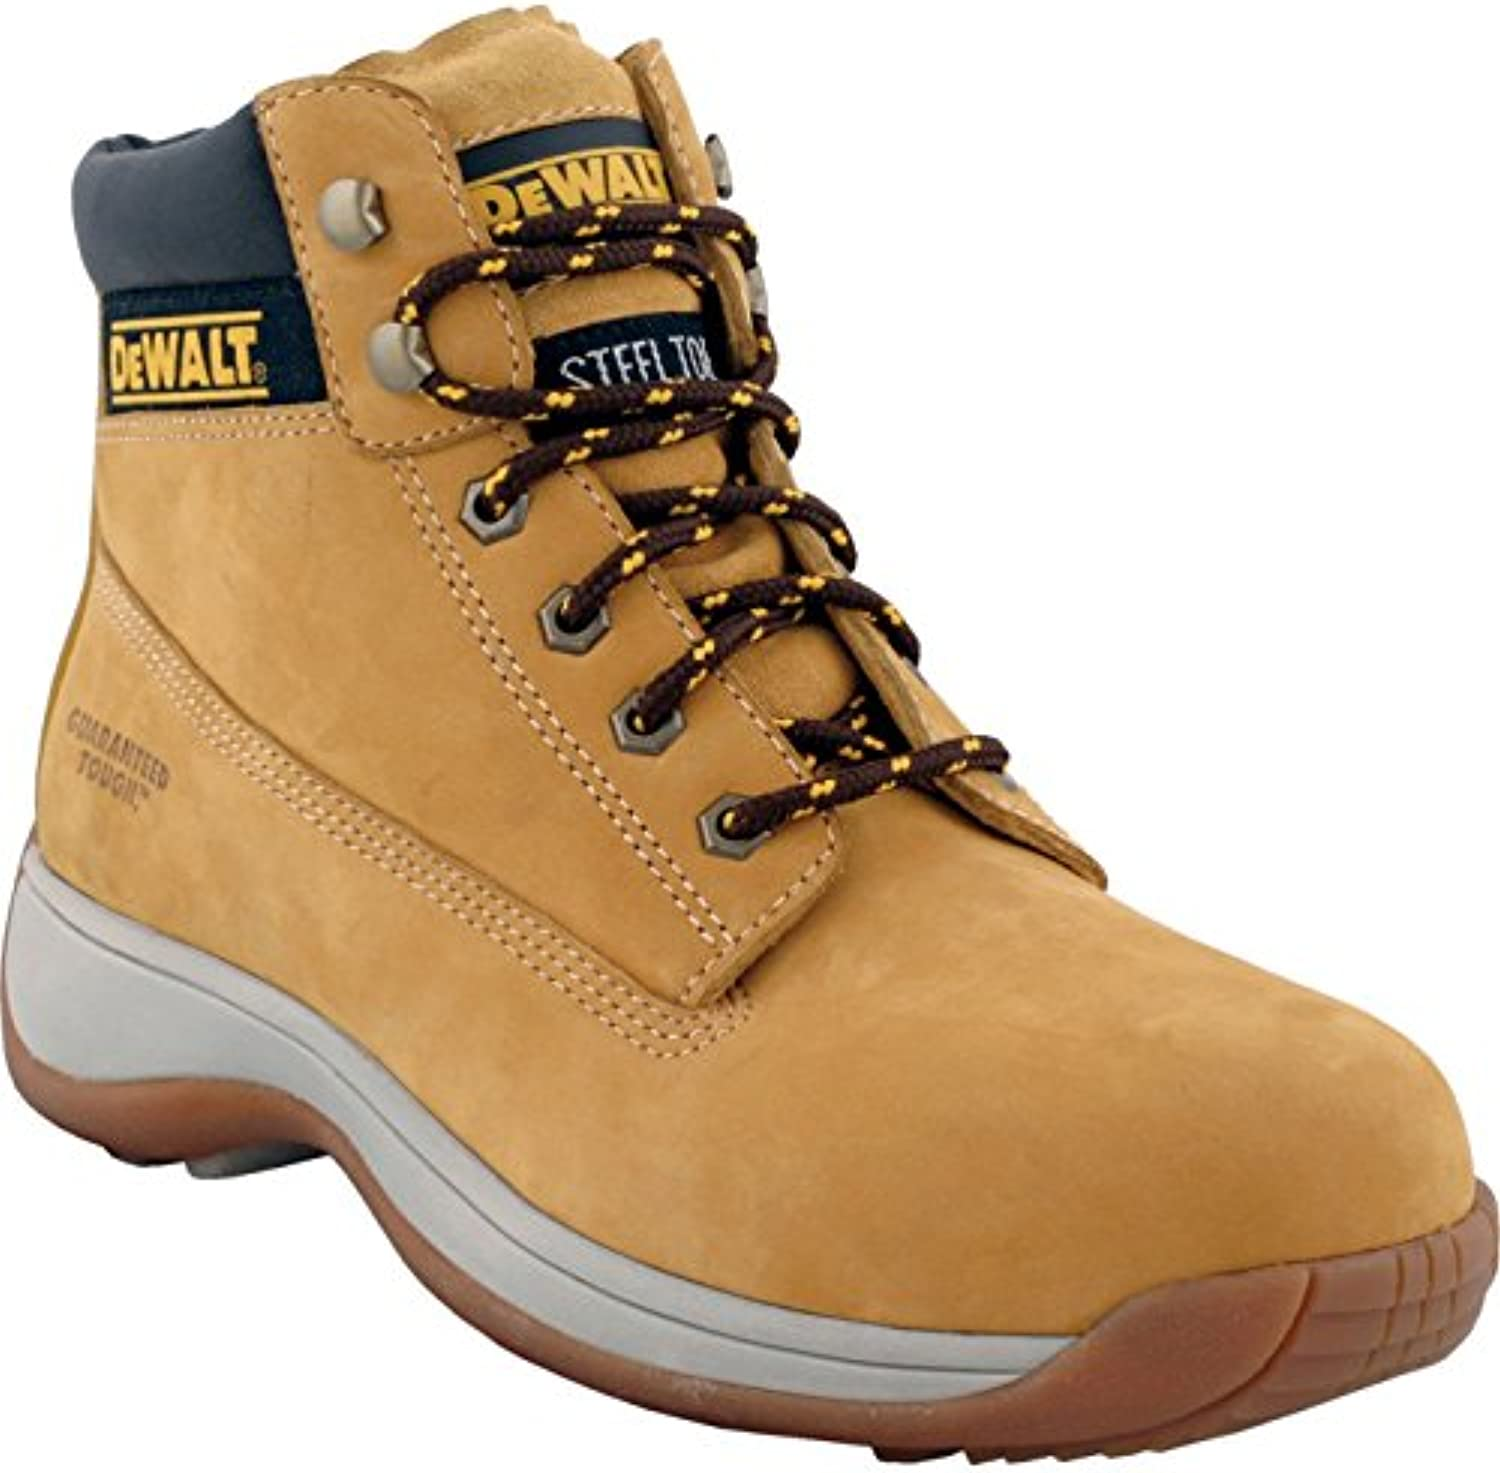 DeWalt Apprentice Nubuck Sports Safety Work Boots Wheat Size 11